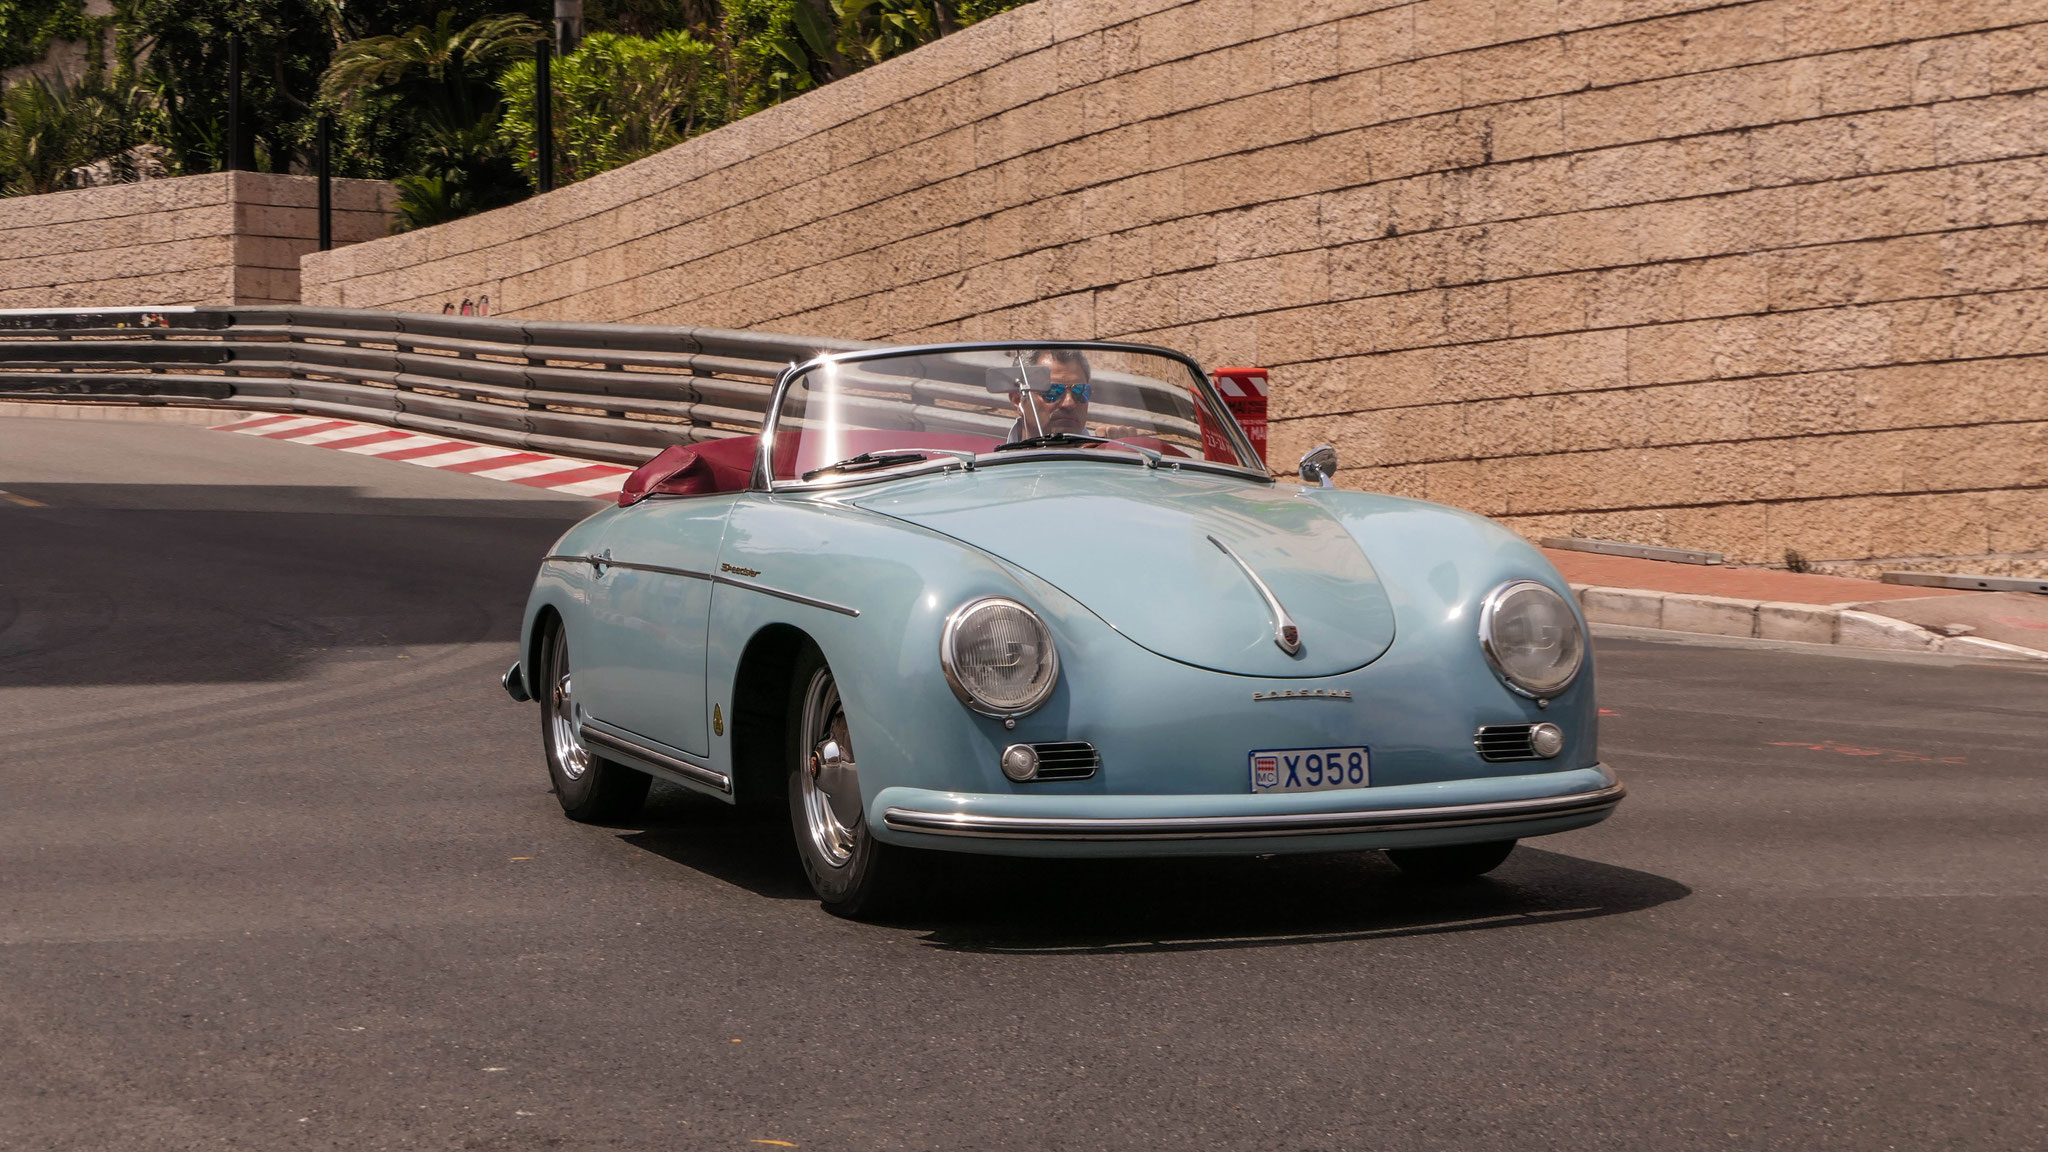 Porsche 356 1600 Super Speedster - X958 (MC)